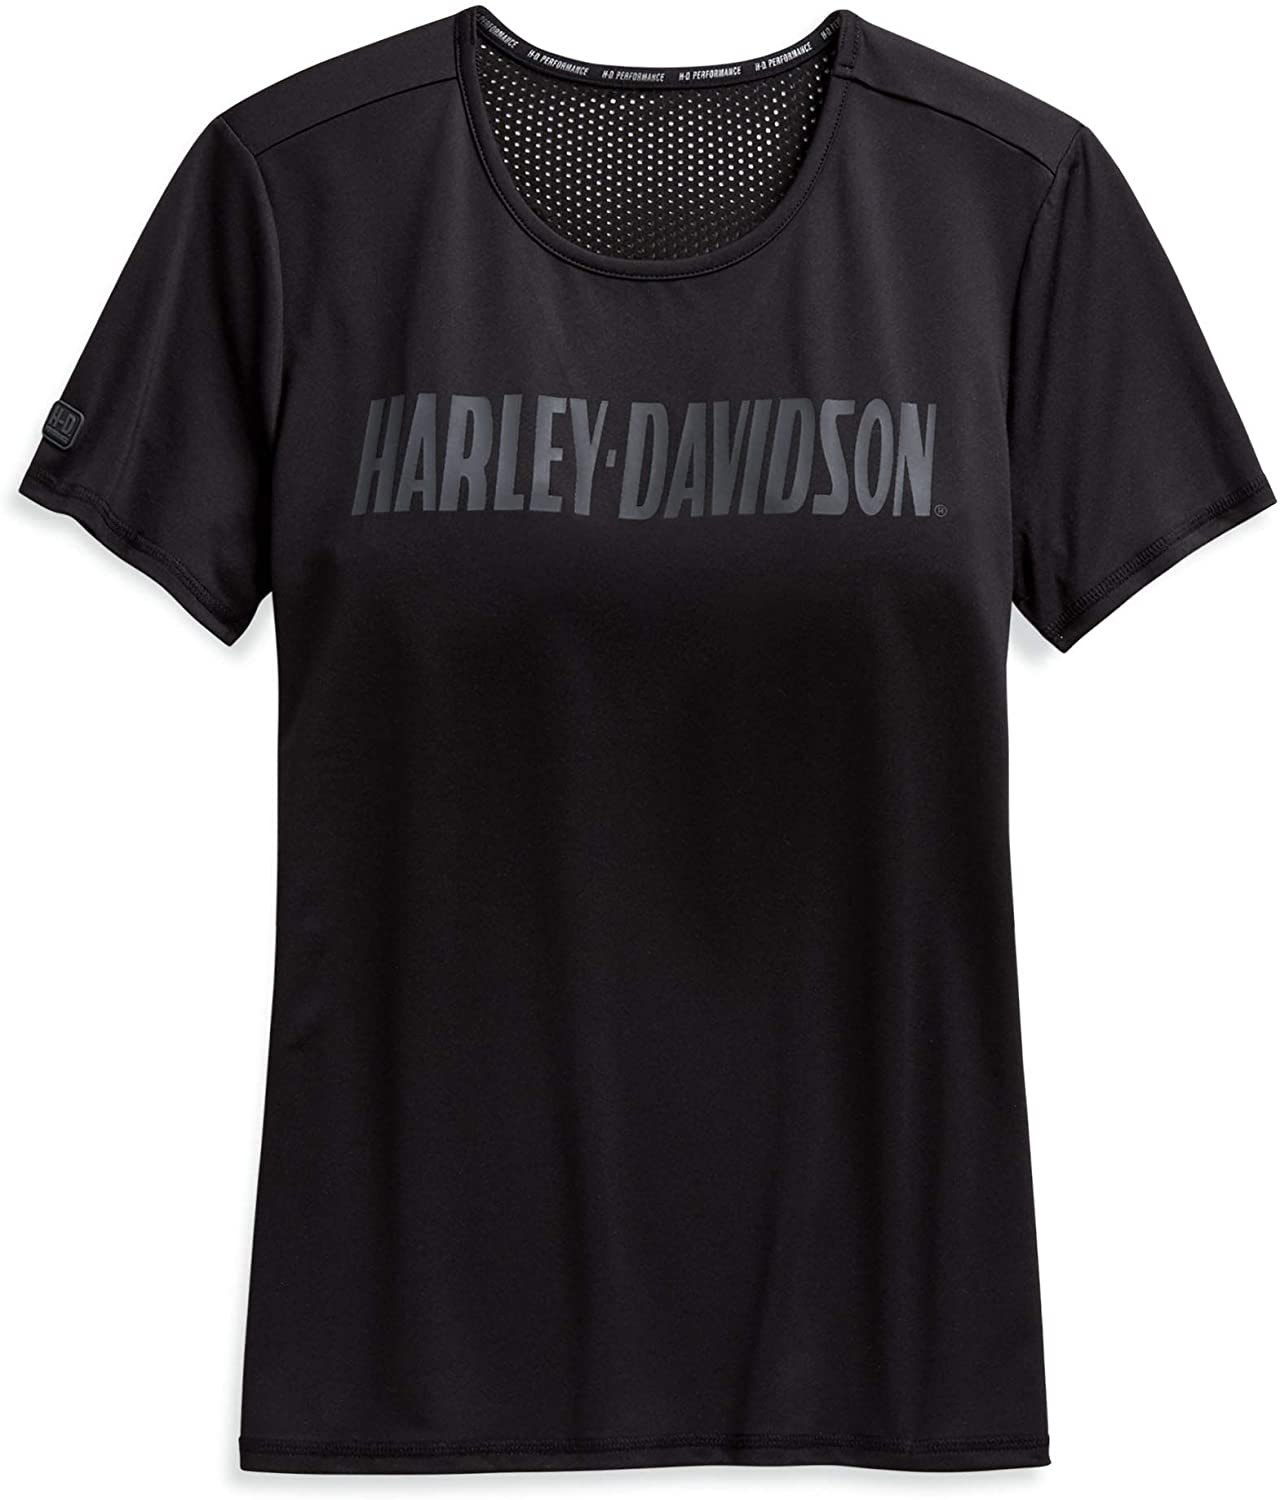 Harley-Davidson Women's Performance Wicking Mesh Accent Tee